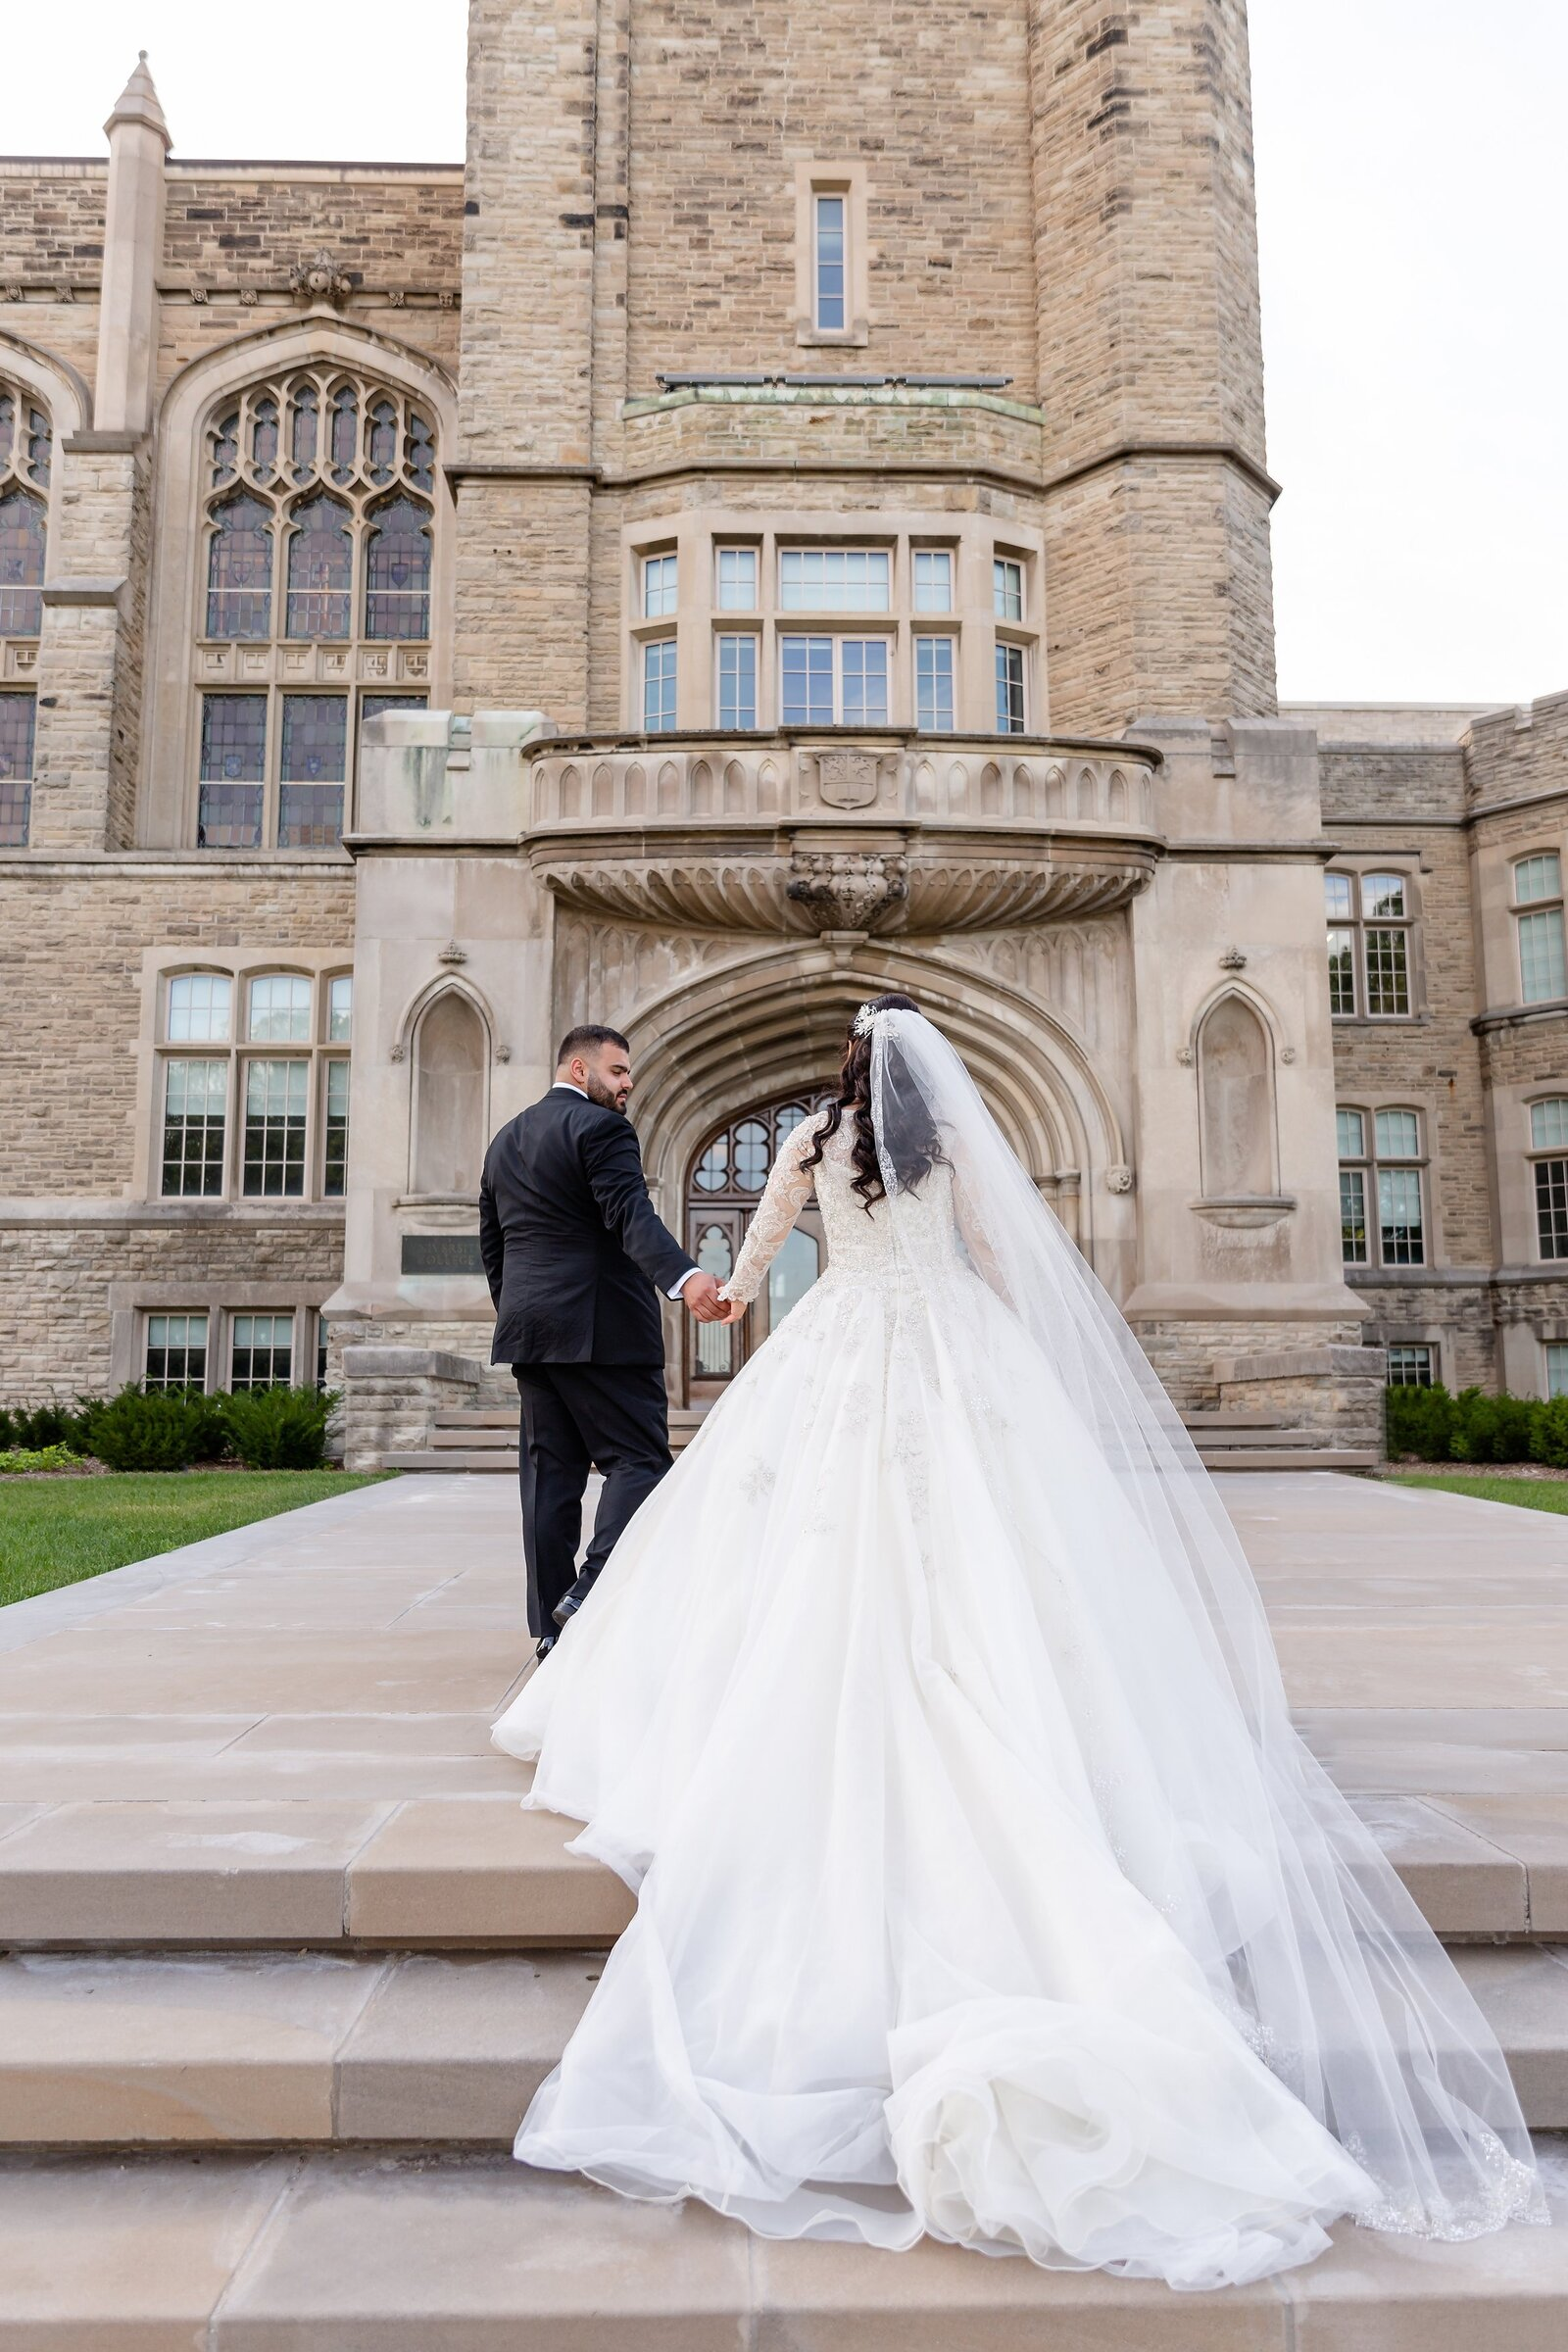 Groom-leads-his-lebanese-bride-up-the-steps-at-western-university-during-their-wedding